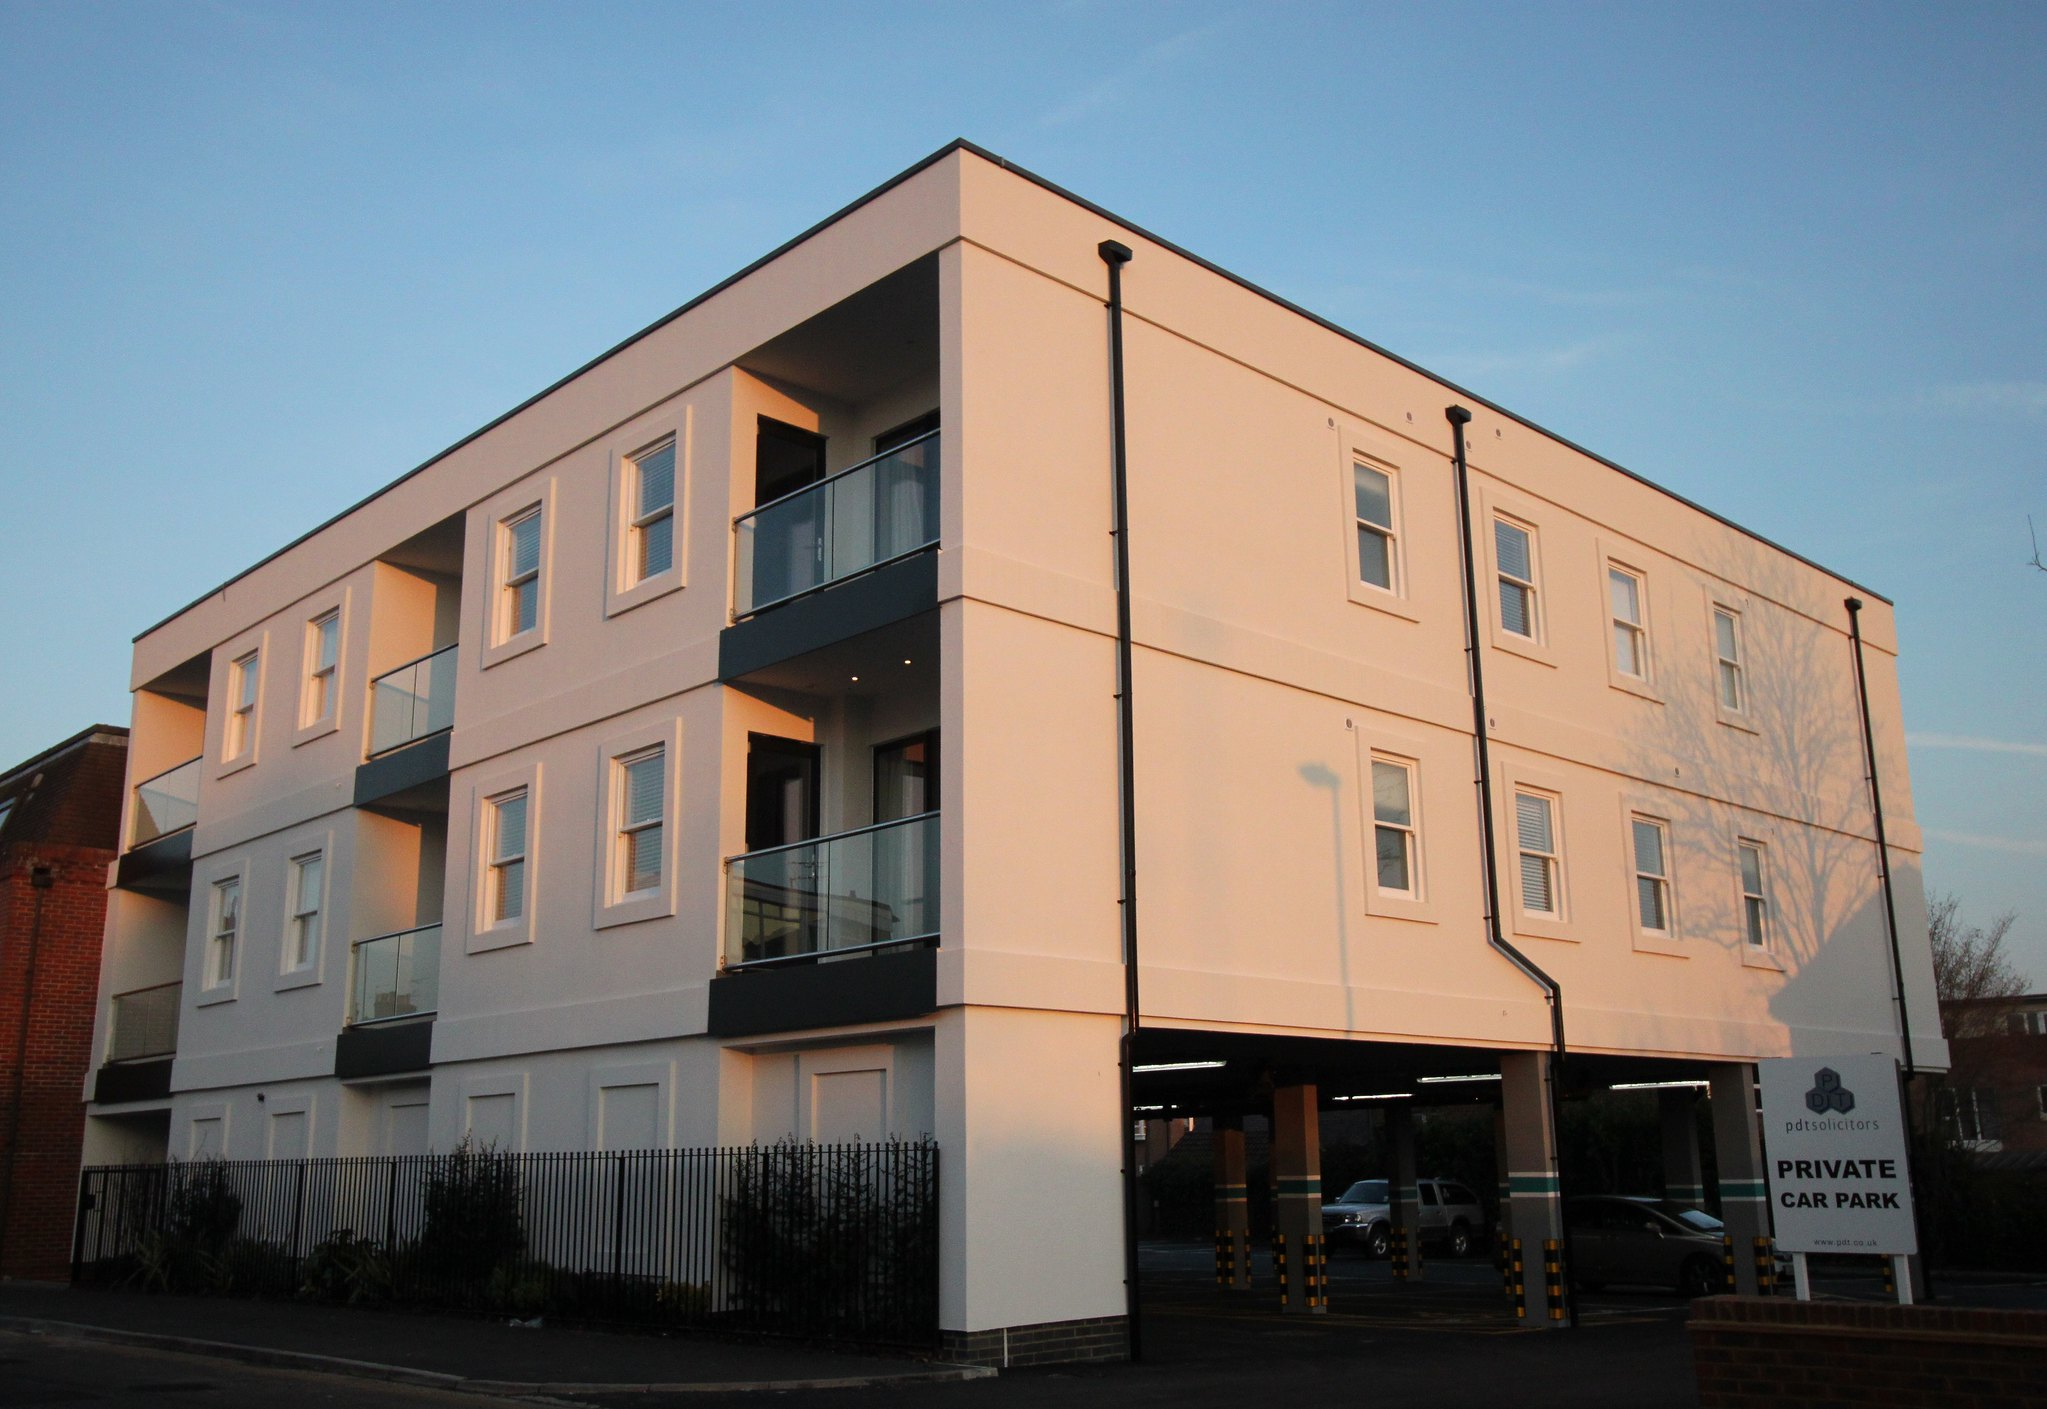 Flats in Queensway, Horsham